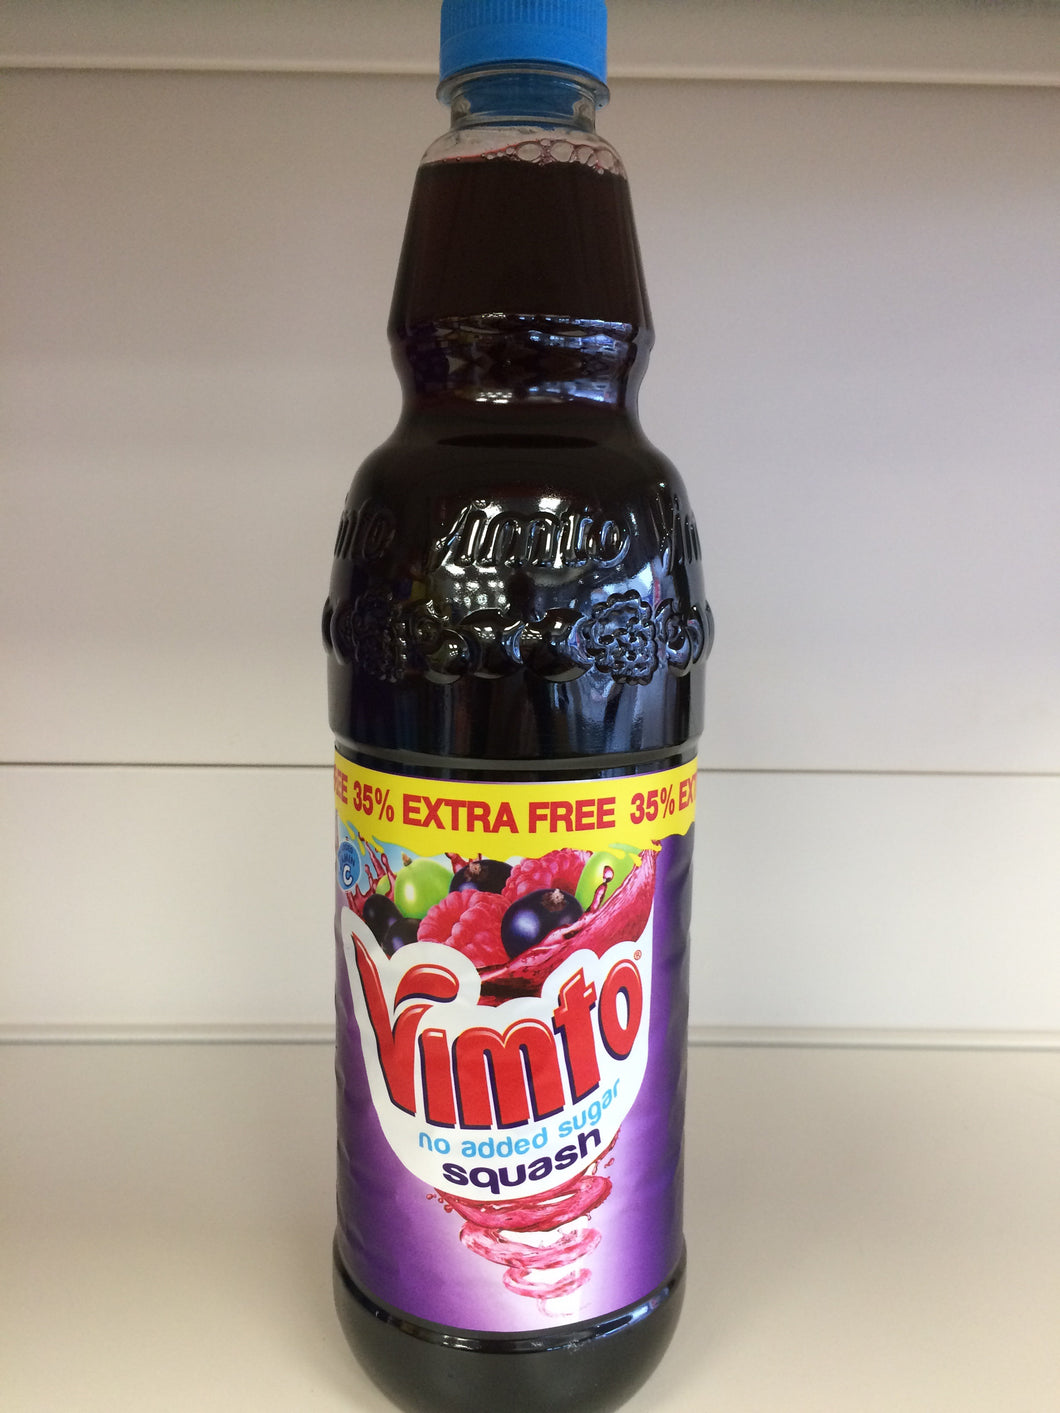 Vimto Squash with no added sugar 1 Litre